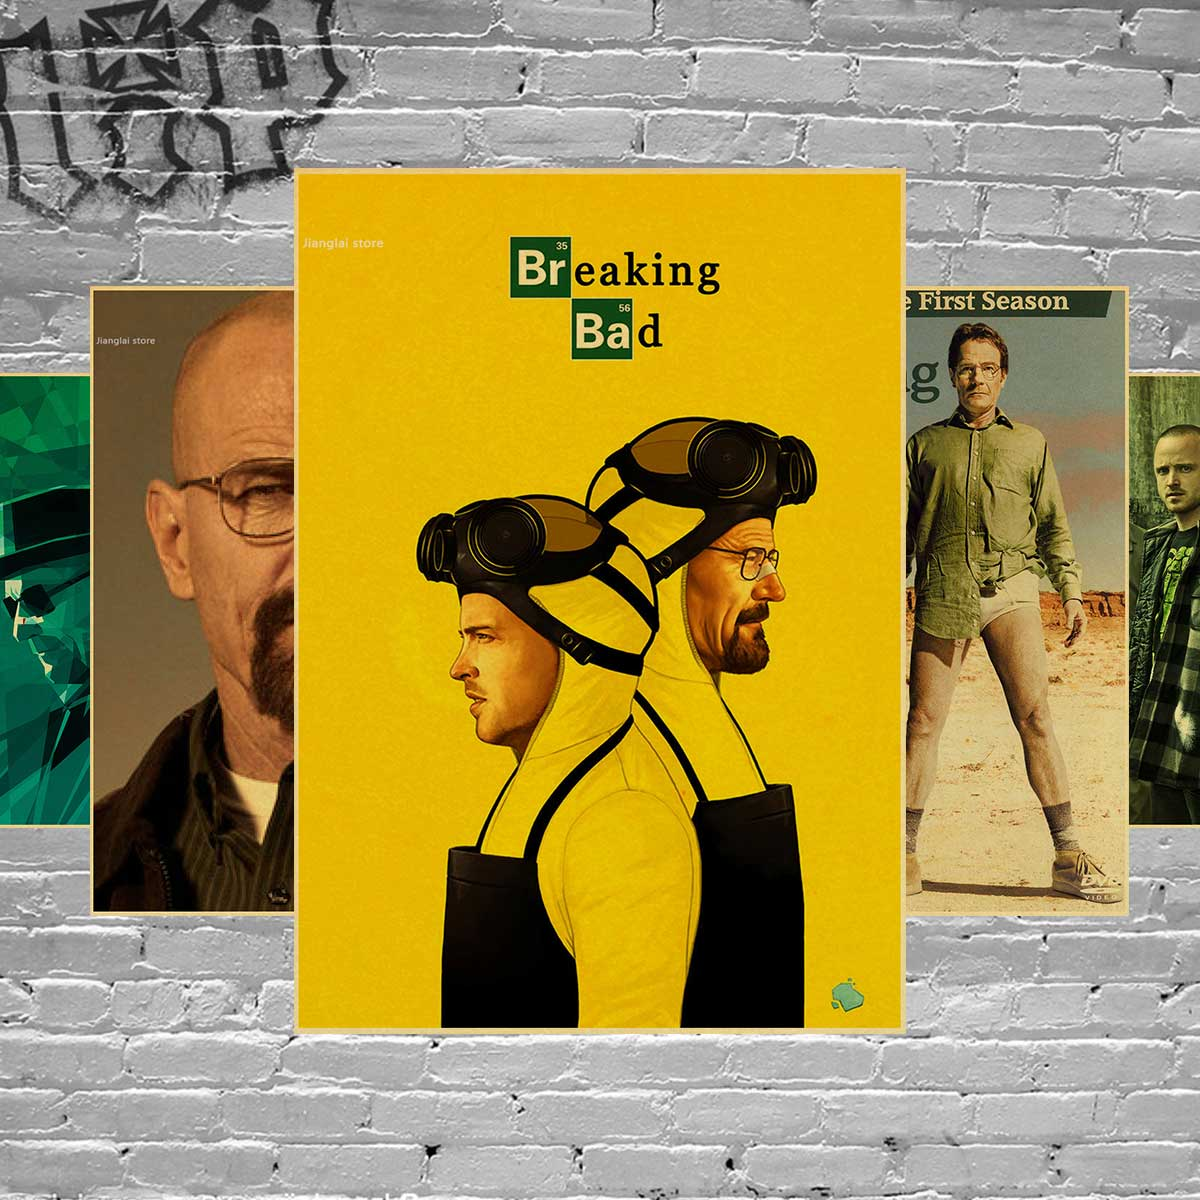 Wall stickers home decor wall poster breaking bad vintage poster wall stickers home decor wall poster breaking bad vintage poster retro walter white posters american tv series in wall stickers from home garden on amipublicfo Choice Image